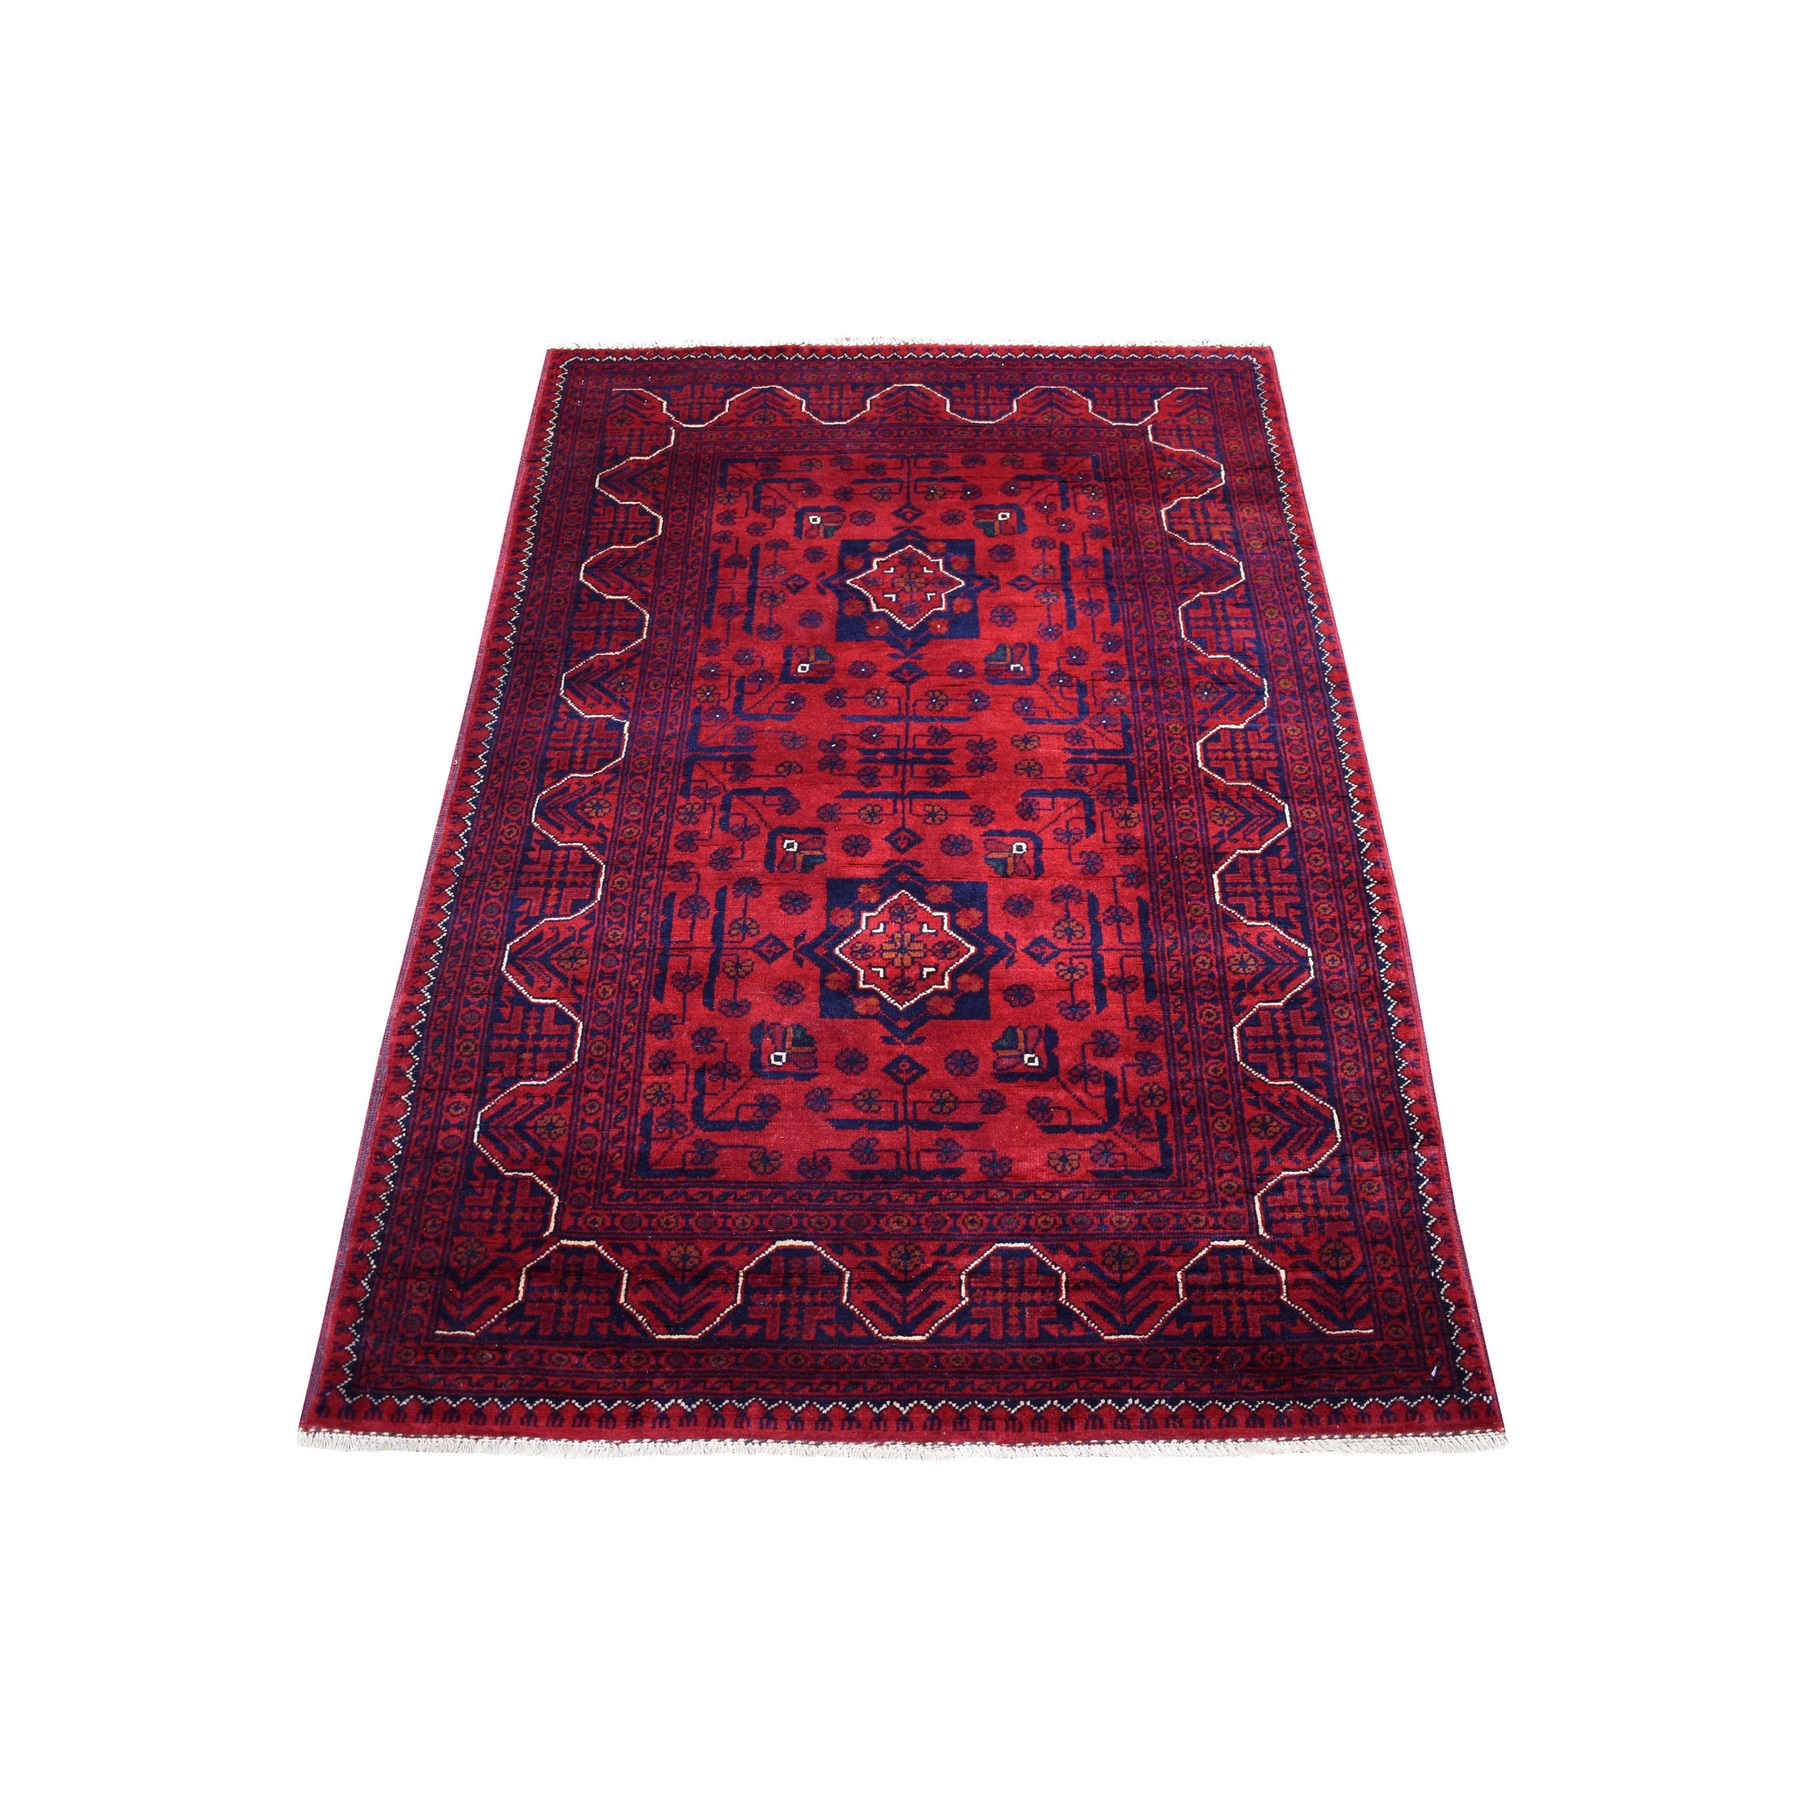 Nomadic And Village Collection Hand Knotted Red Rug No: 1136198